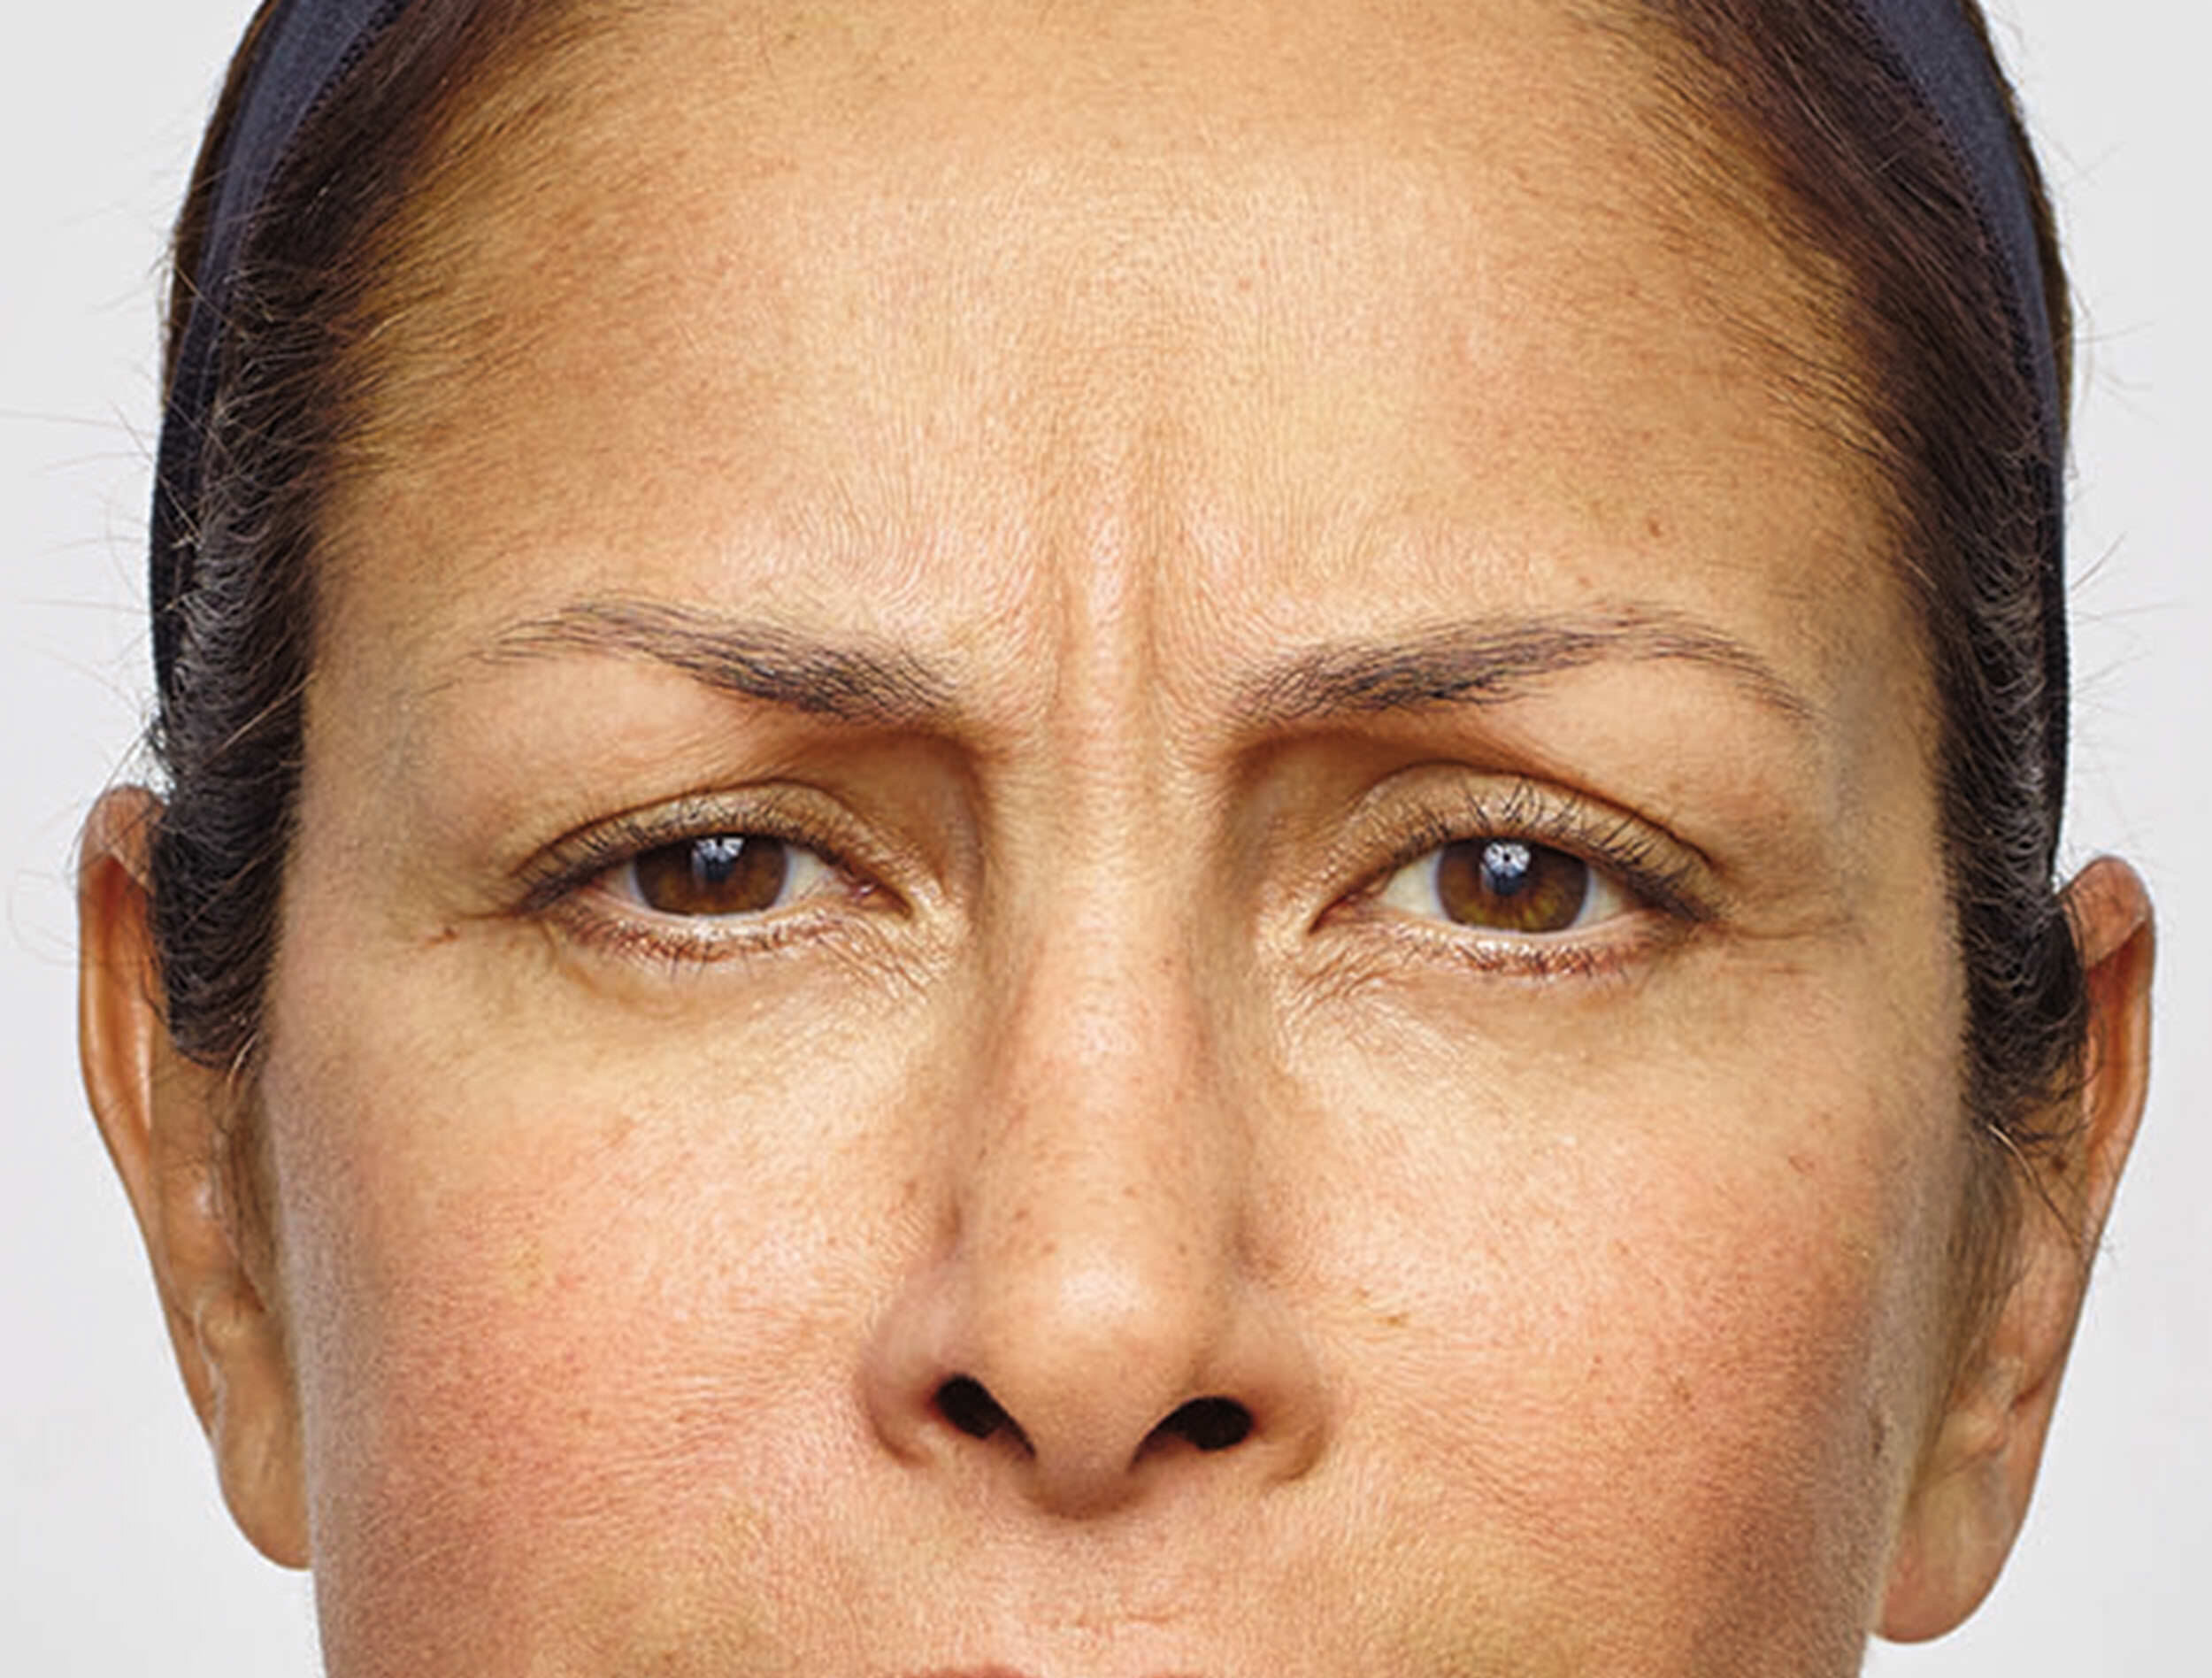 Botox - Relax Crow's Feet & Lines, Look Relaxed and Refreshed